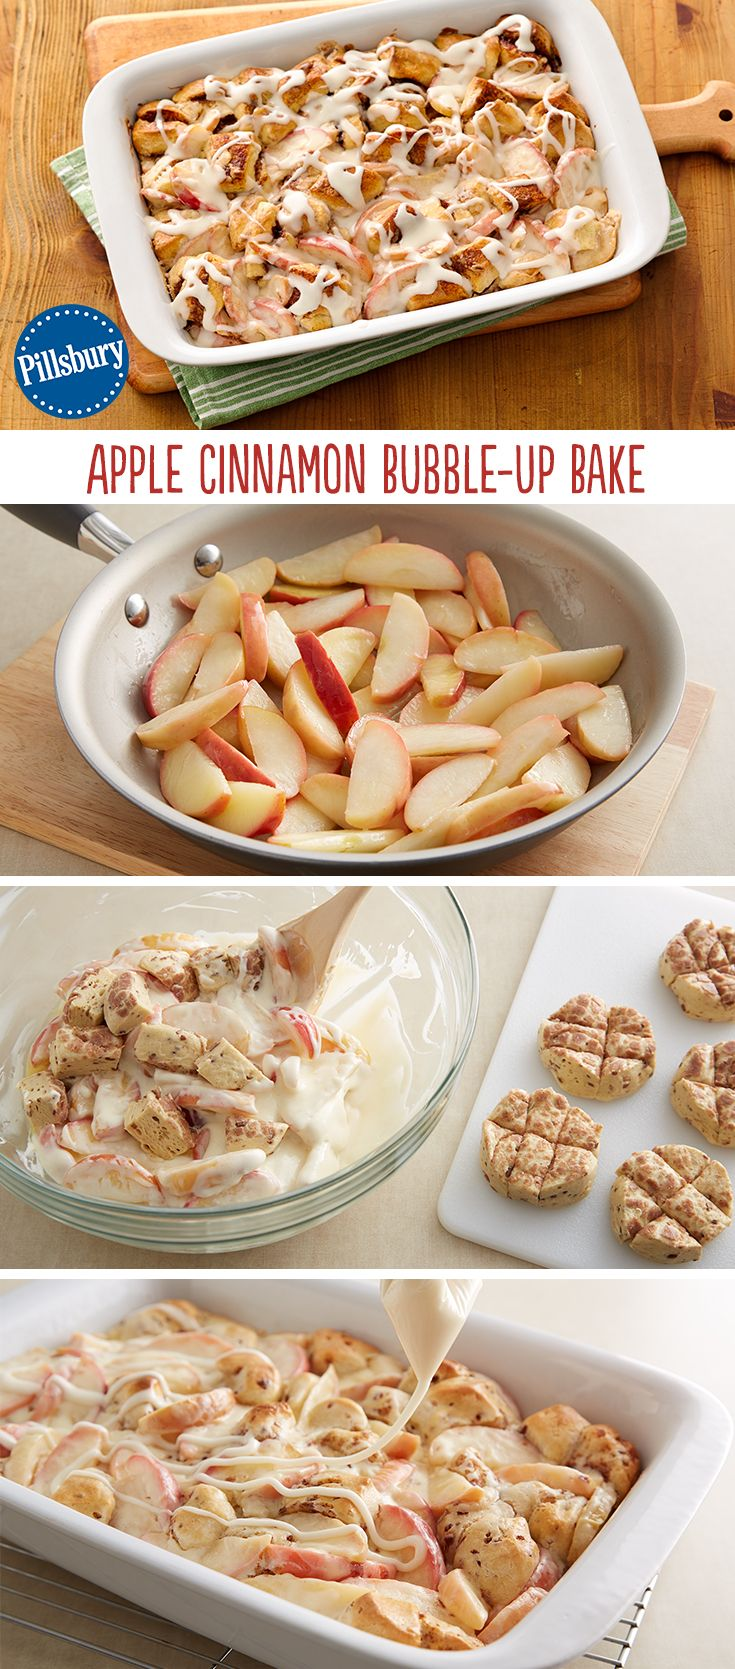 A breakfast made with love! This Apple Cinnamon Bubble-Up Bake has it all with refreshing apples, divine cream cheese and ooey-gooey cinnamon rolls with icing. The whole family can get behind this easy weekend breakfast! Enjoy! (Bubble Up Breakfast Baking)